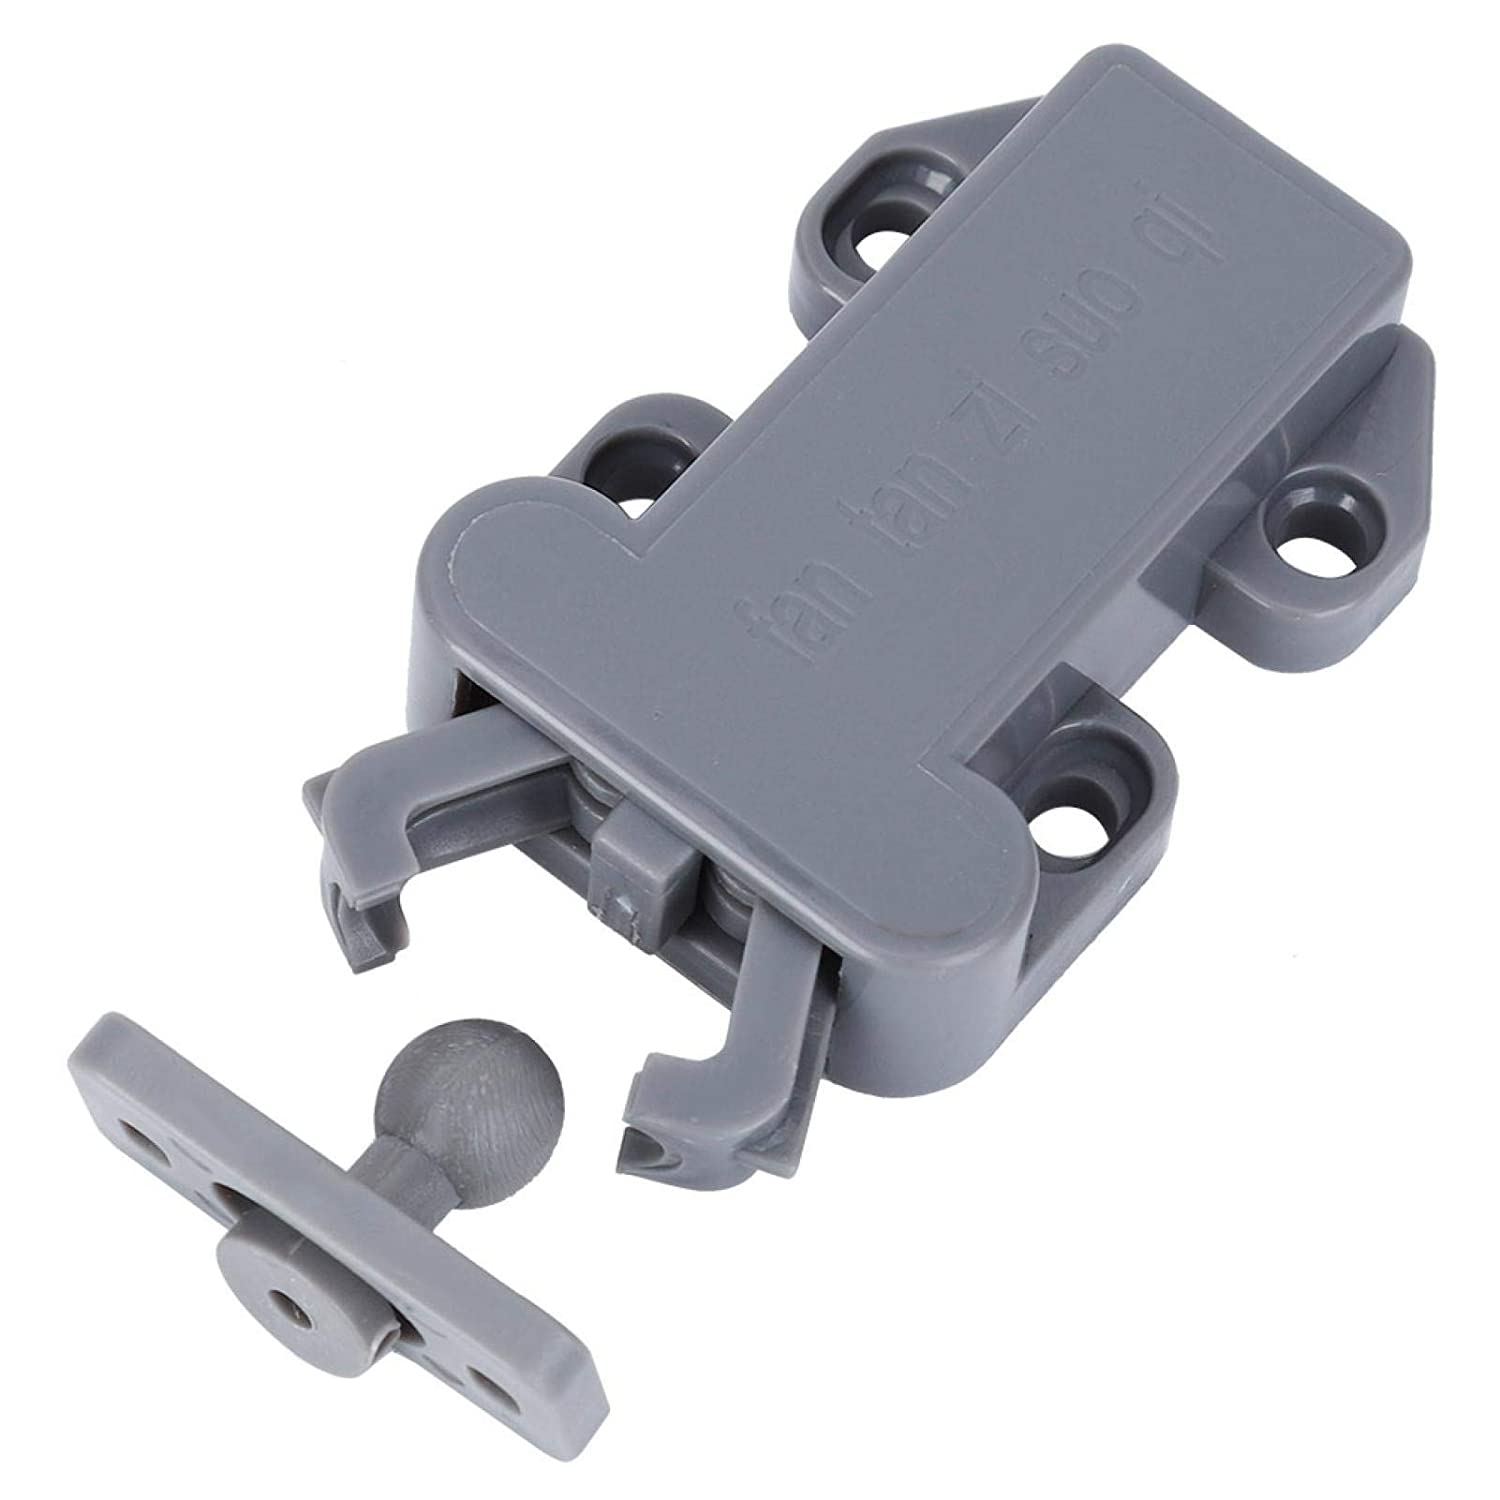 No Drill 6 Sets Cabinet Drawer Self Locking Door Latches Non-Magnetic for Furniture Automatic Pop-Up Gray